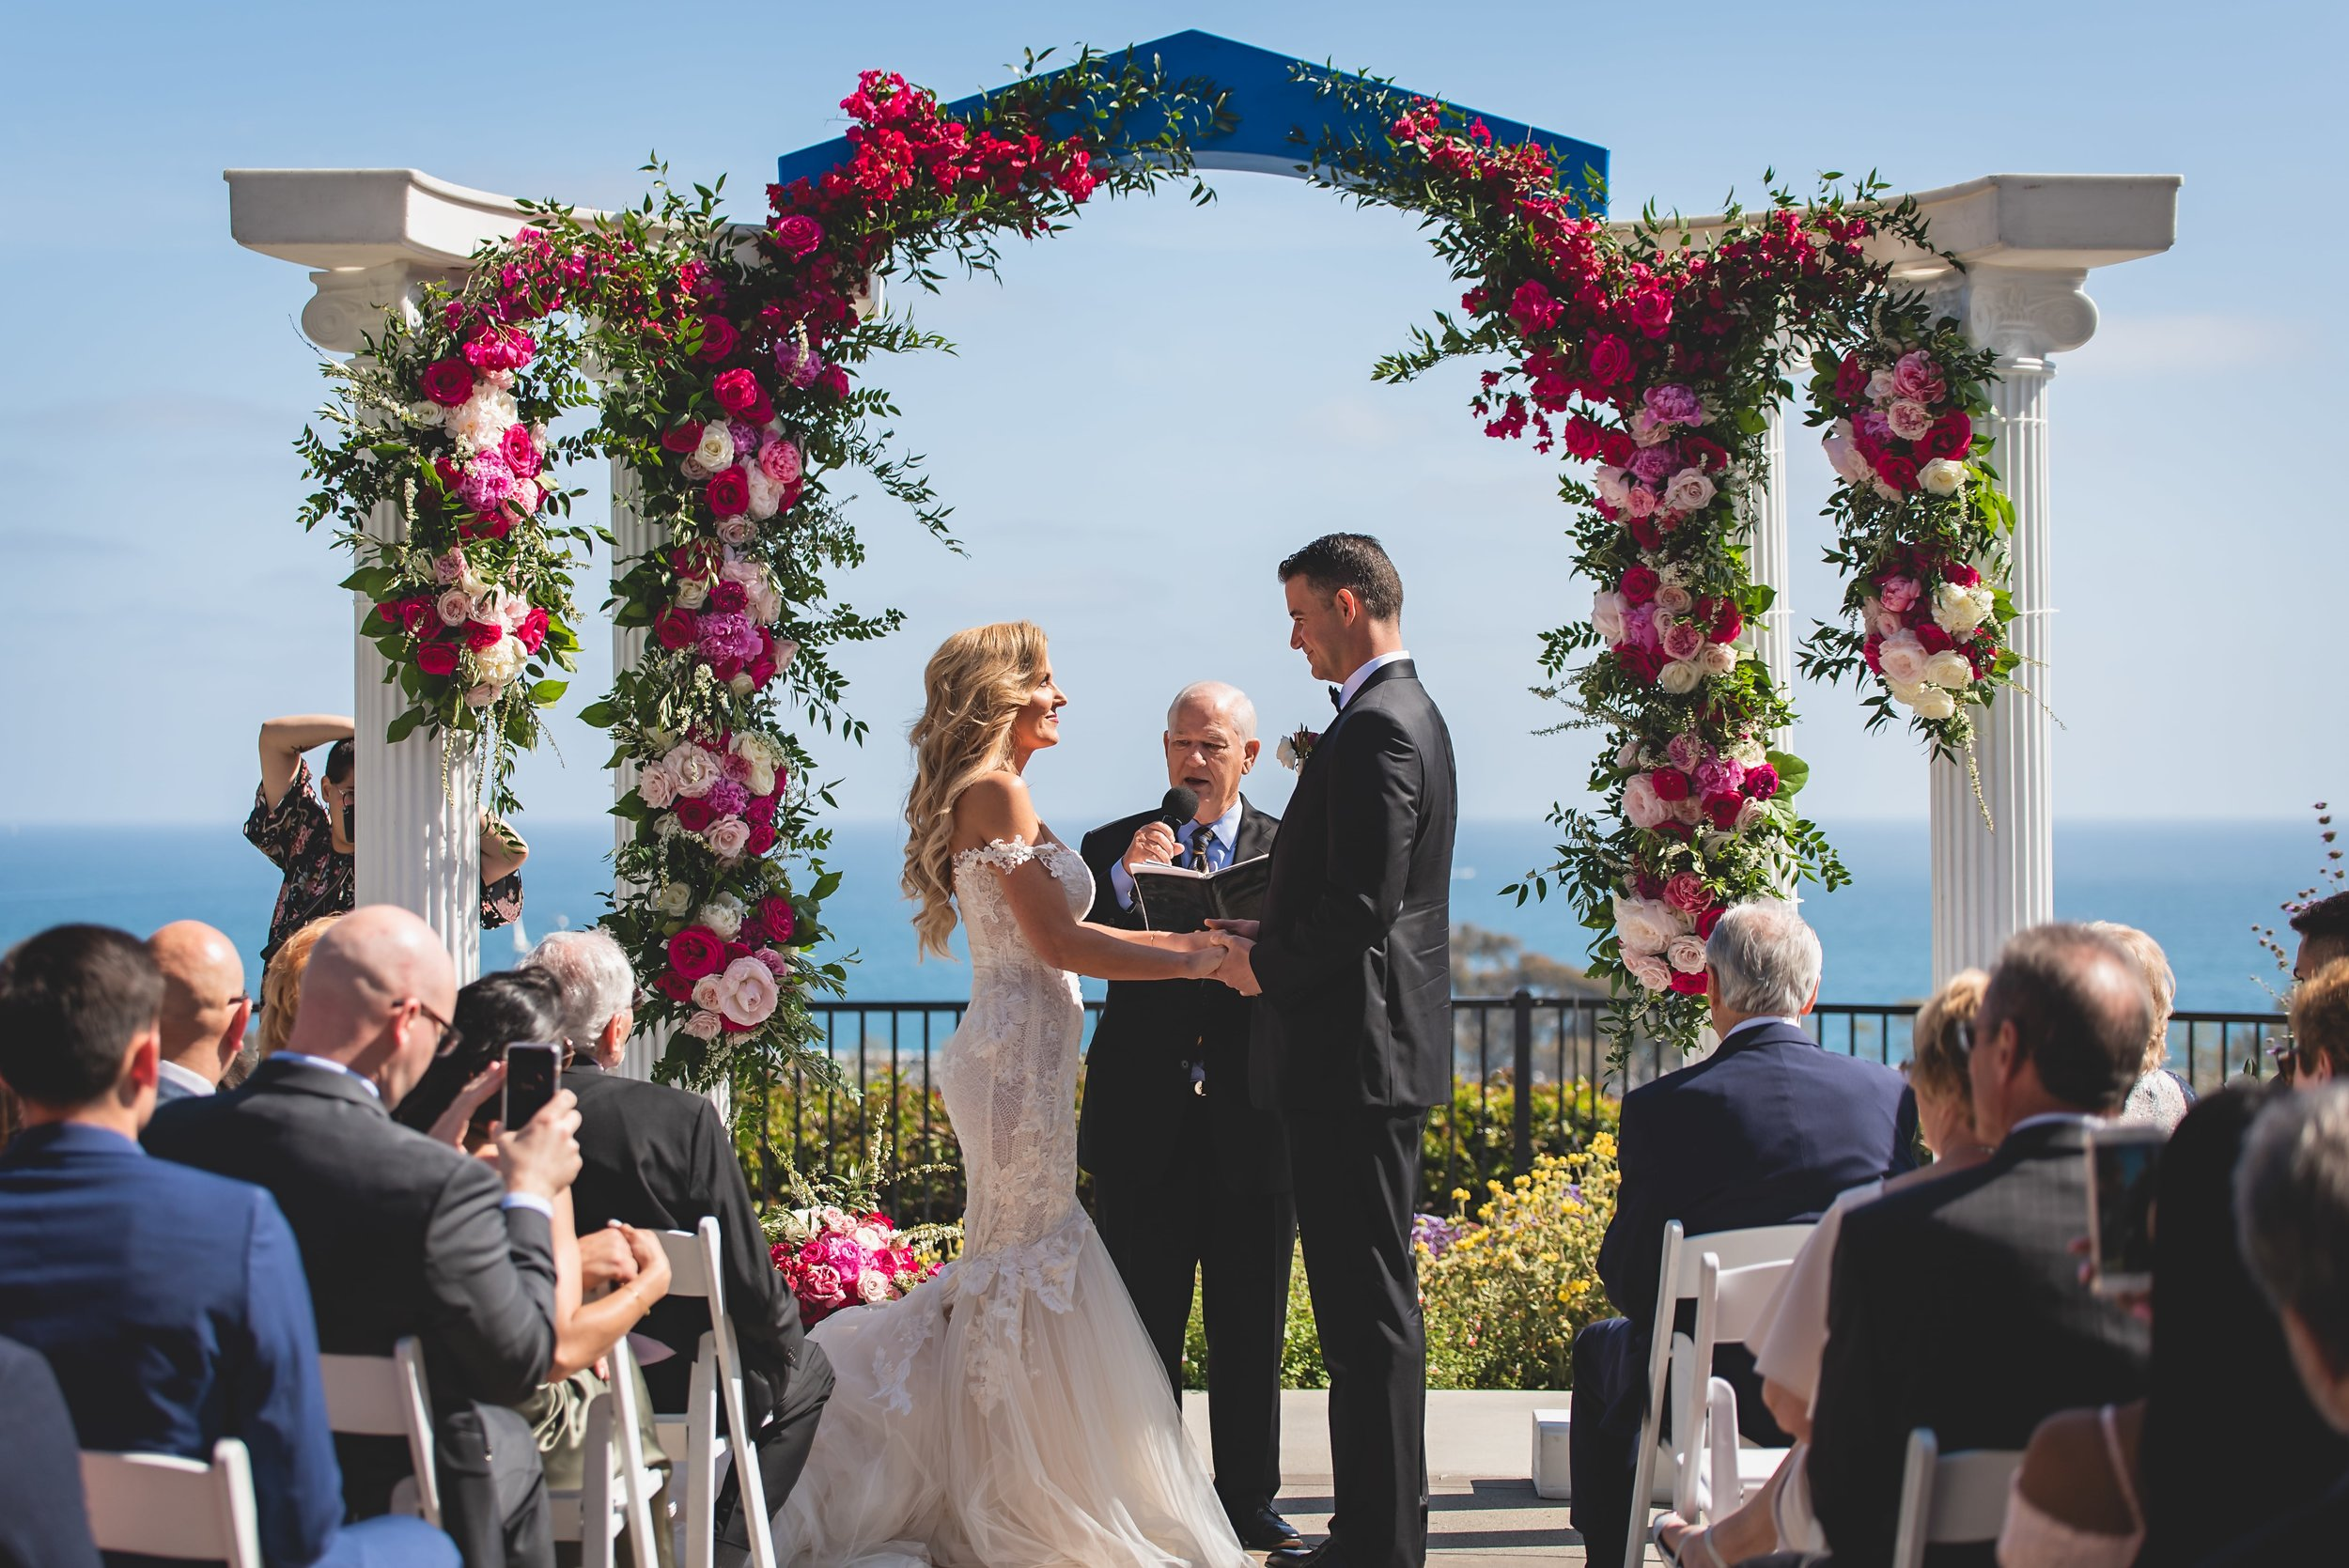 Wedding Photography Packages - Heritage Park, Dana Point, CA - Wedding ceremony